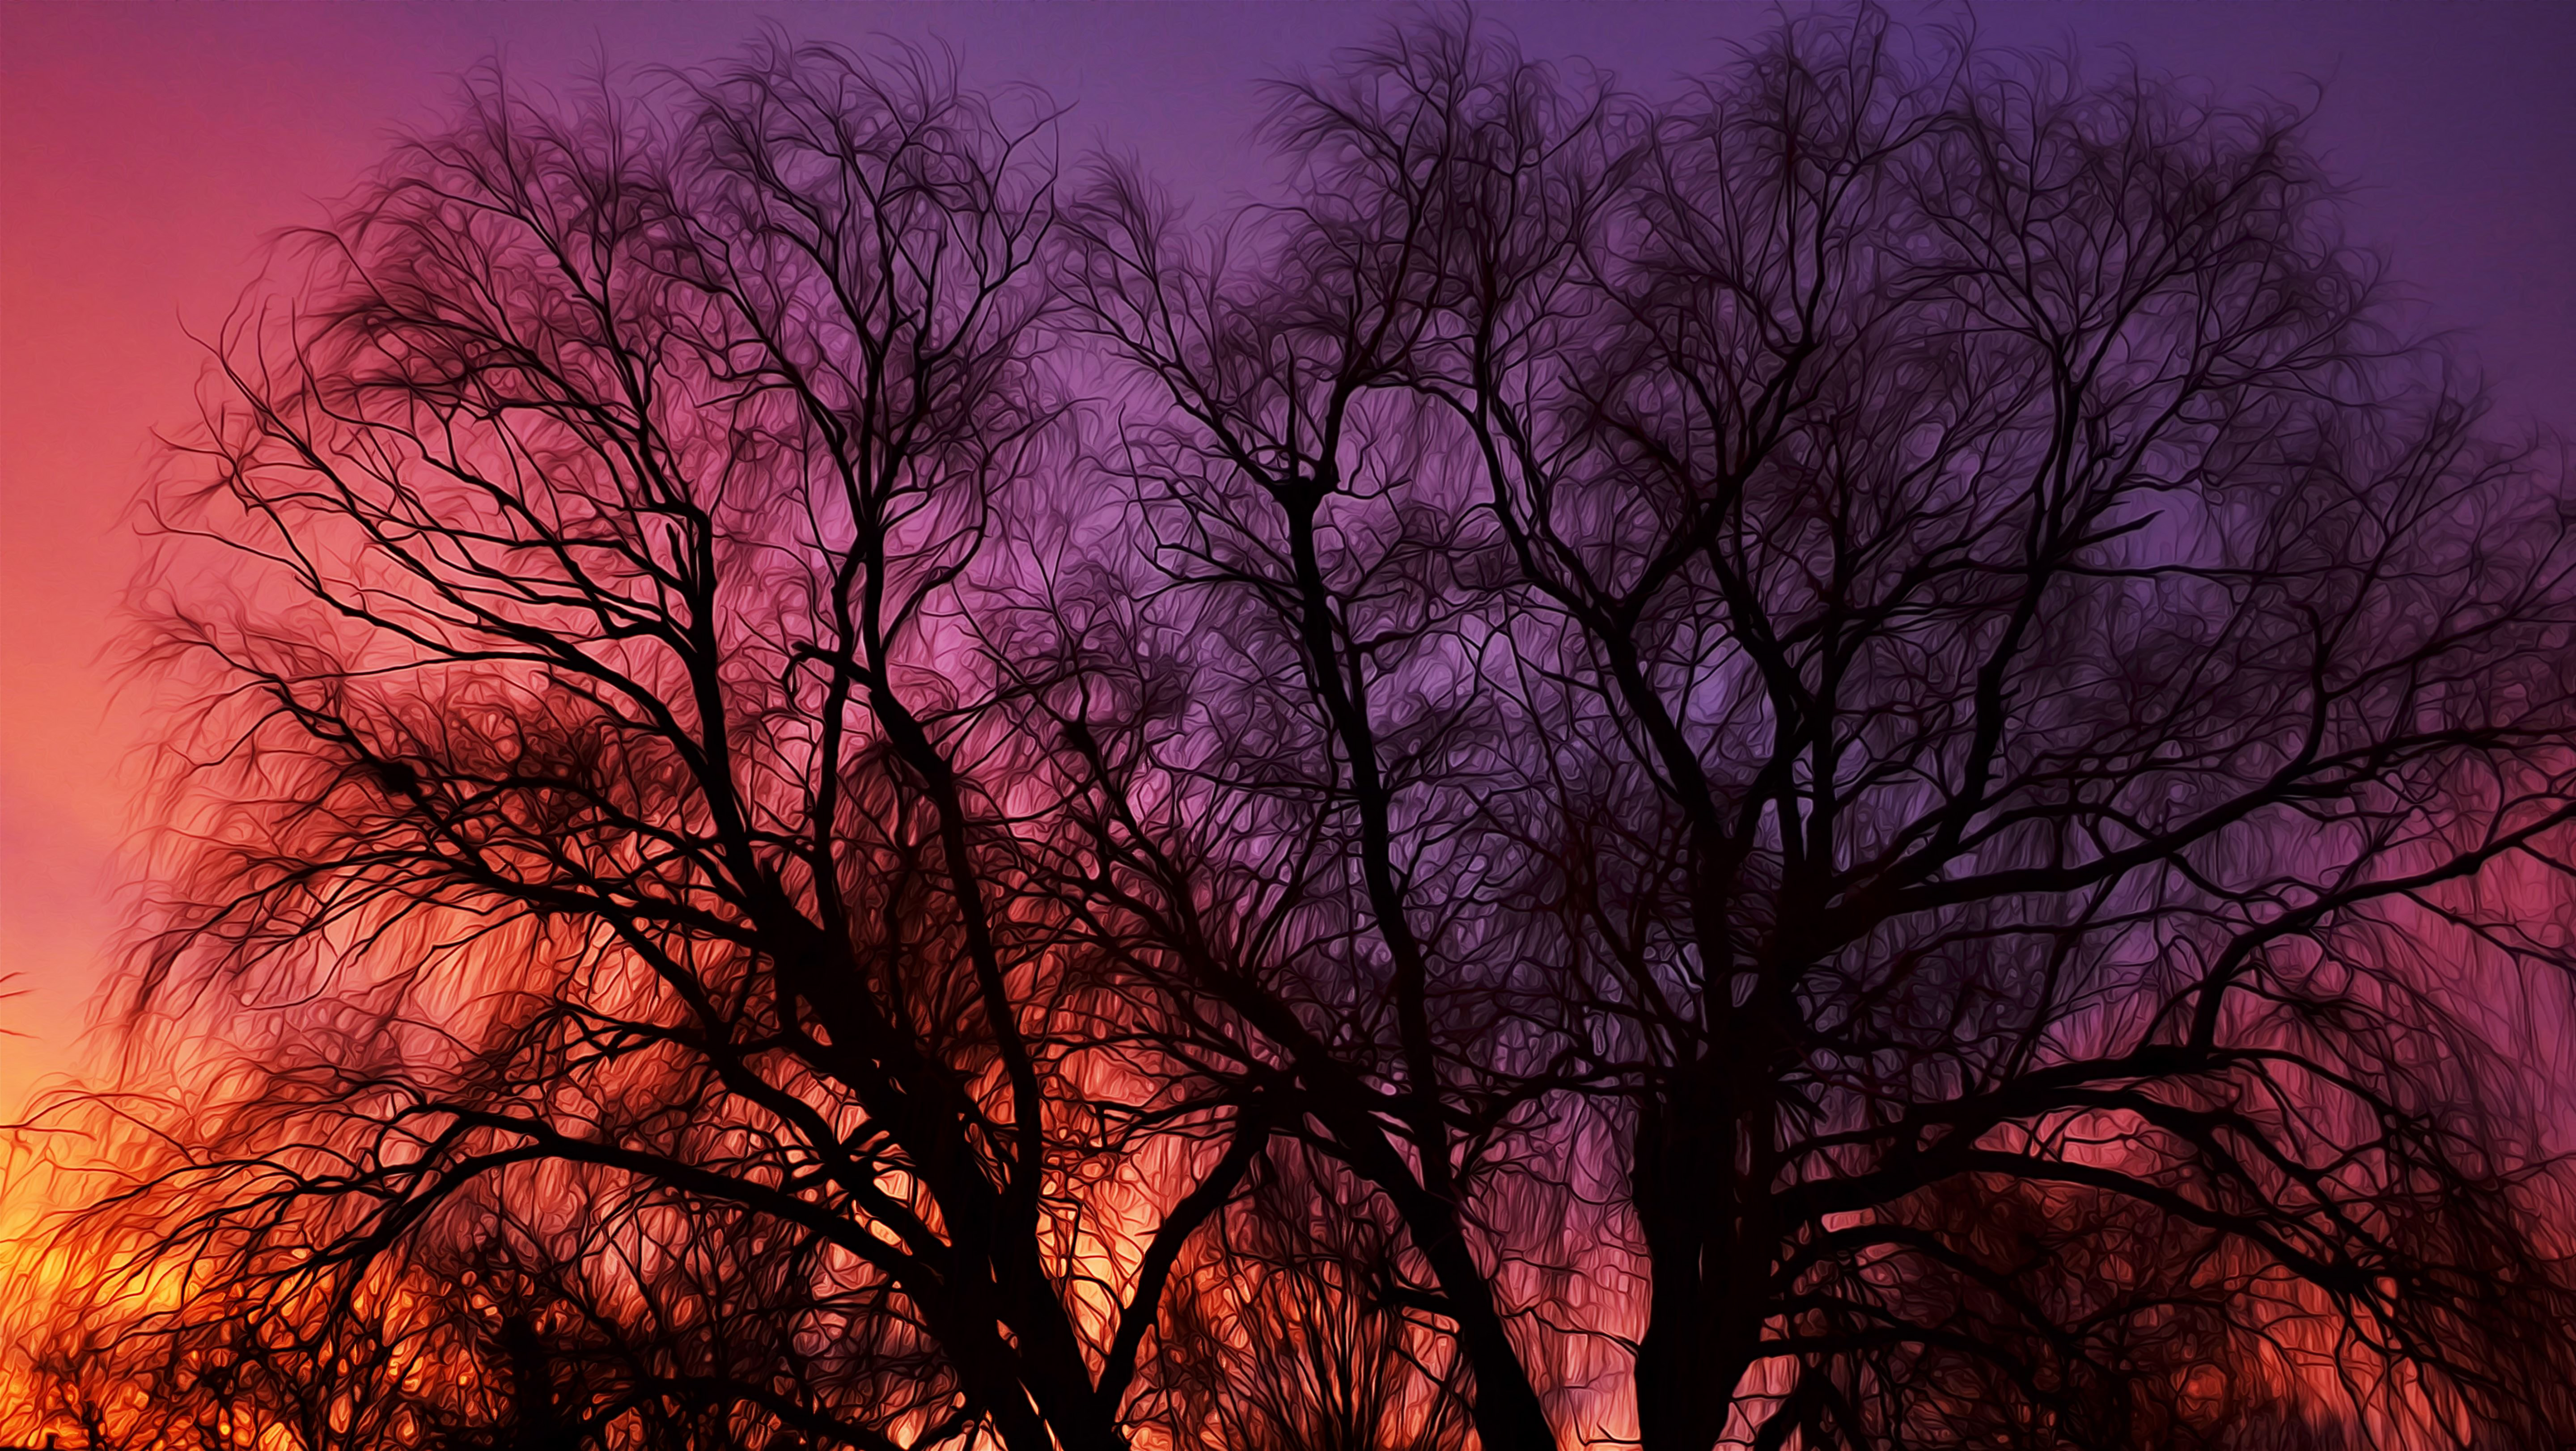 Wallpaper Painting of Tree Branches in the Sunset